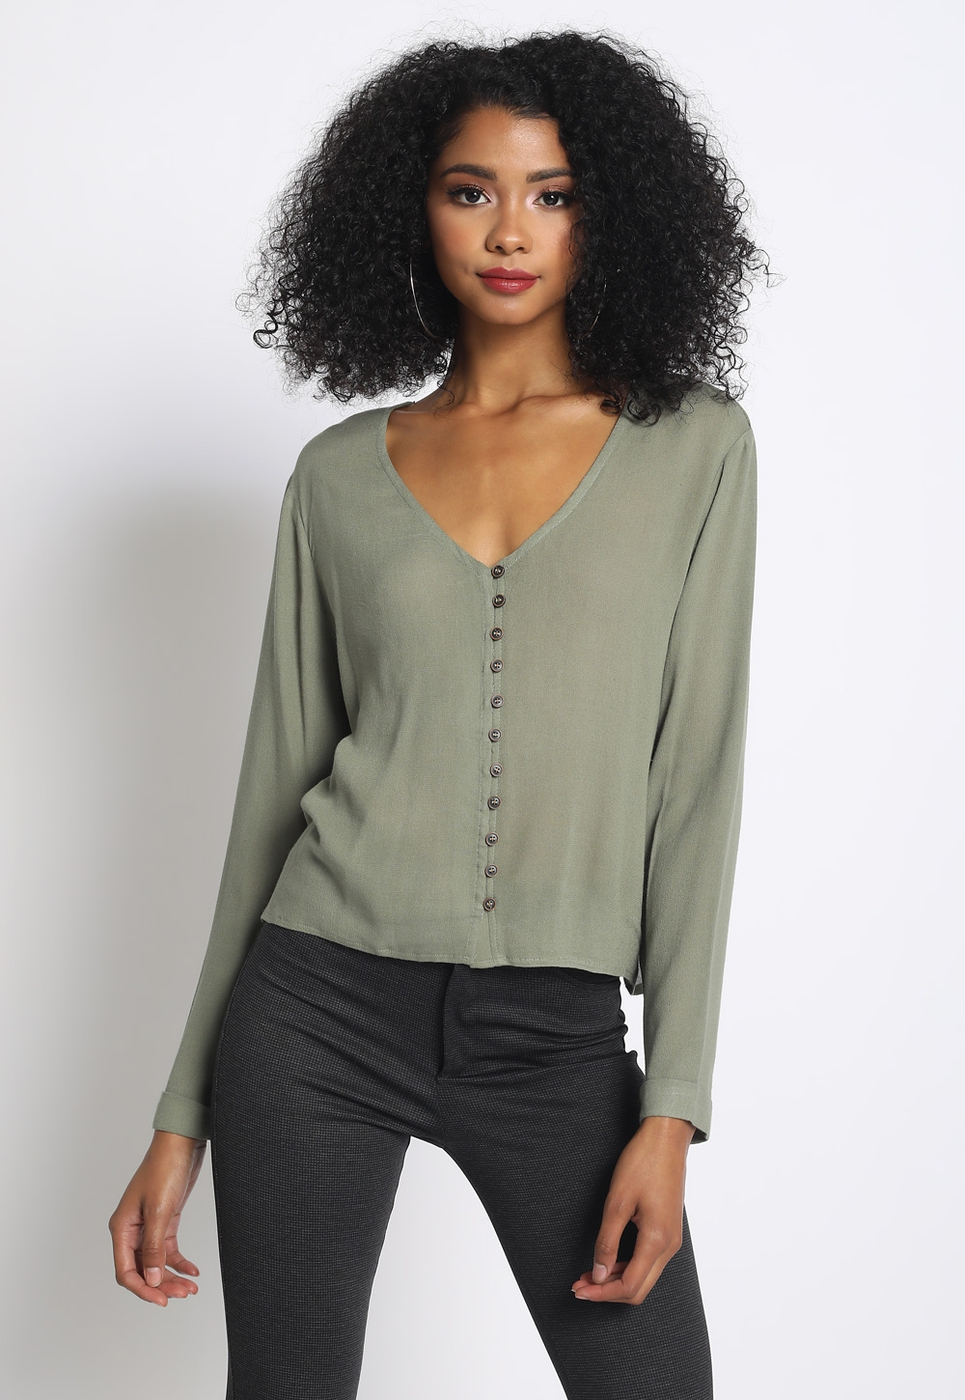 LONG SLEEVE BUTTON UP V NECK TOP - orangeshine.com